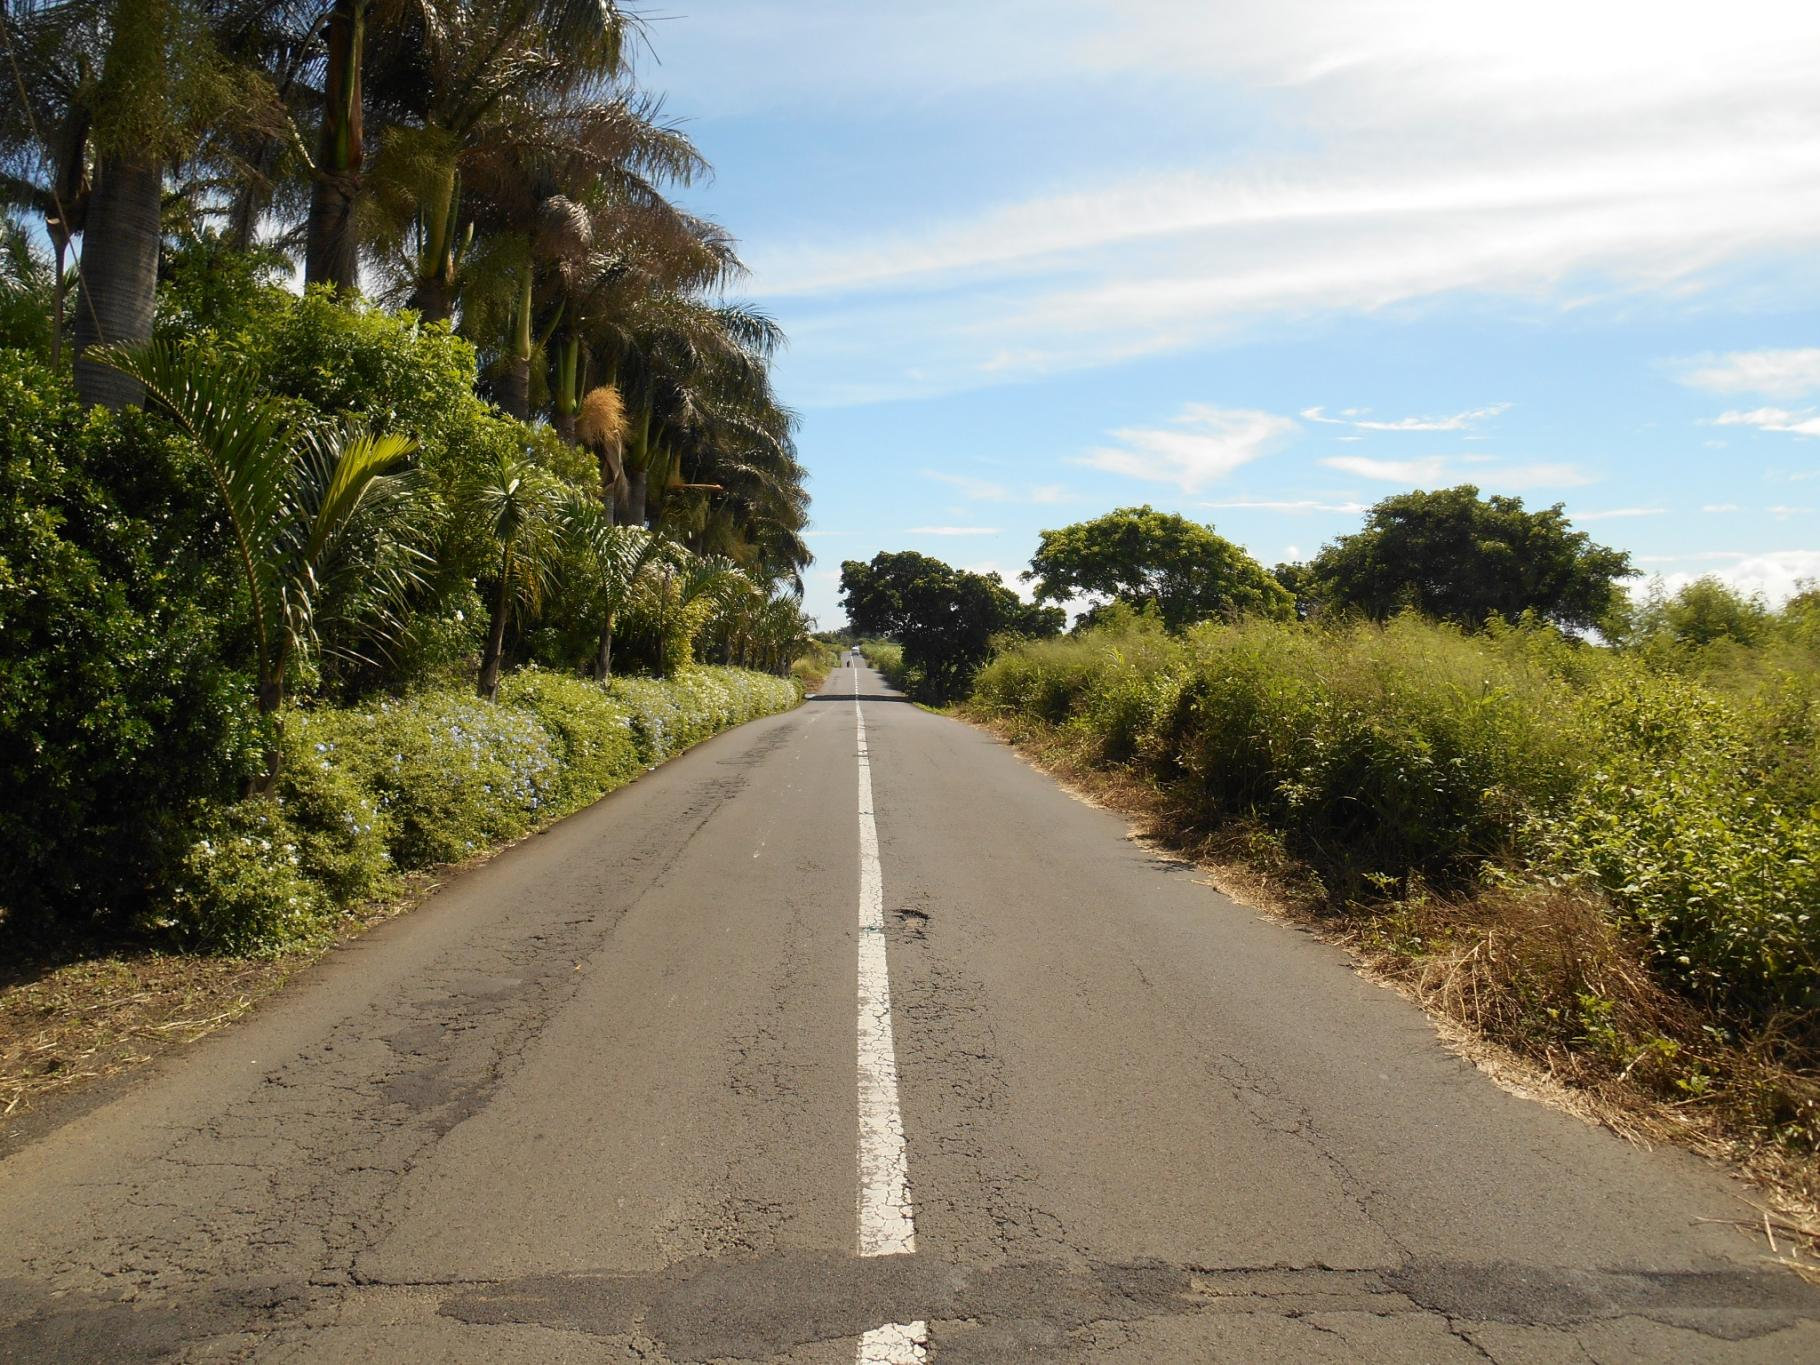 For sale – Beautiful agricultural land of 5 acres 52 located on the main road of St François.